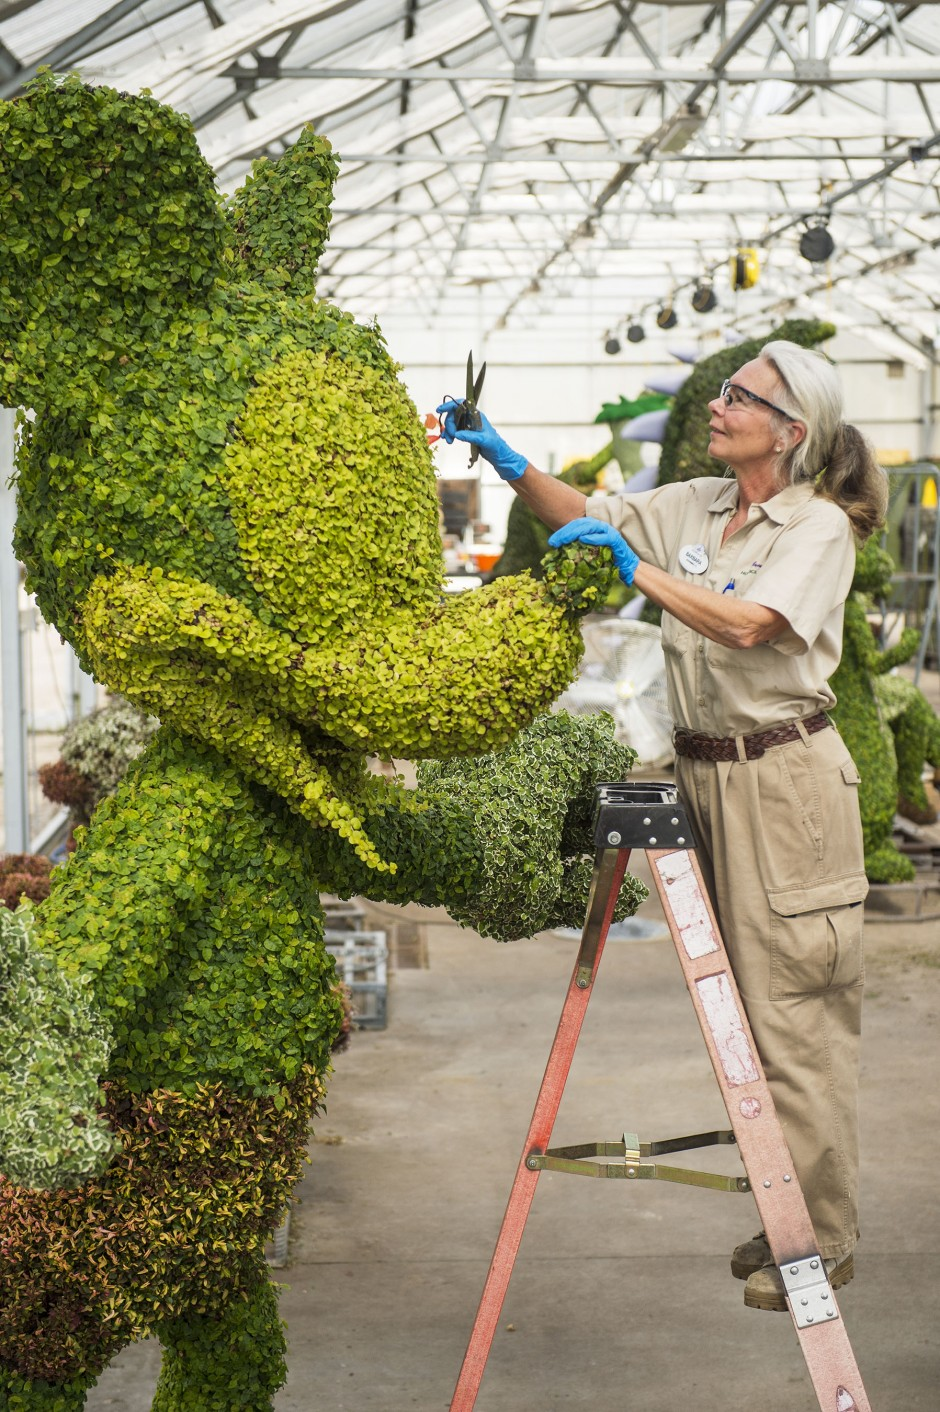 7 New Things Coming to the 2015 Epcot International Flower and Garden Festival